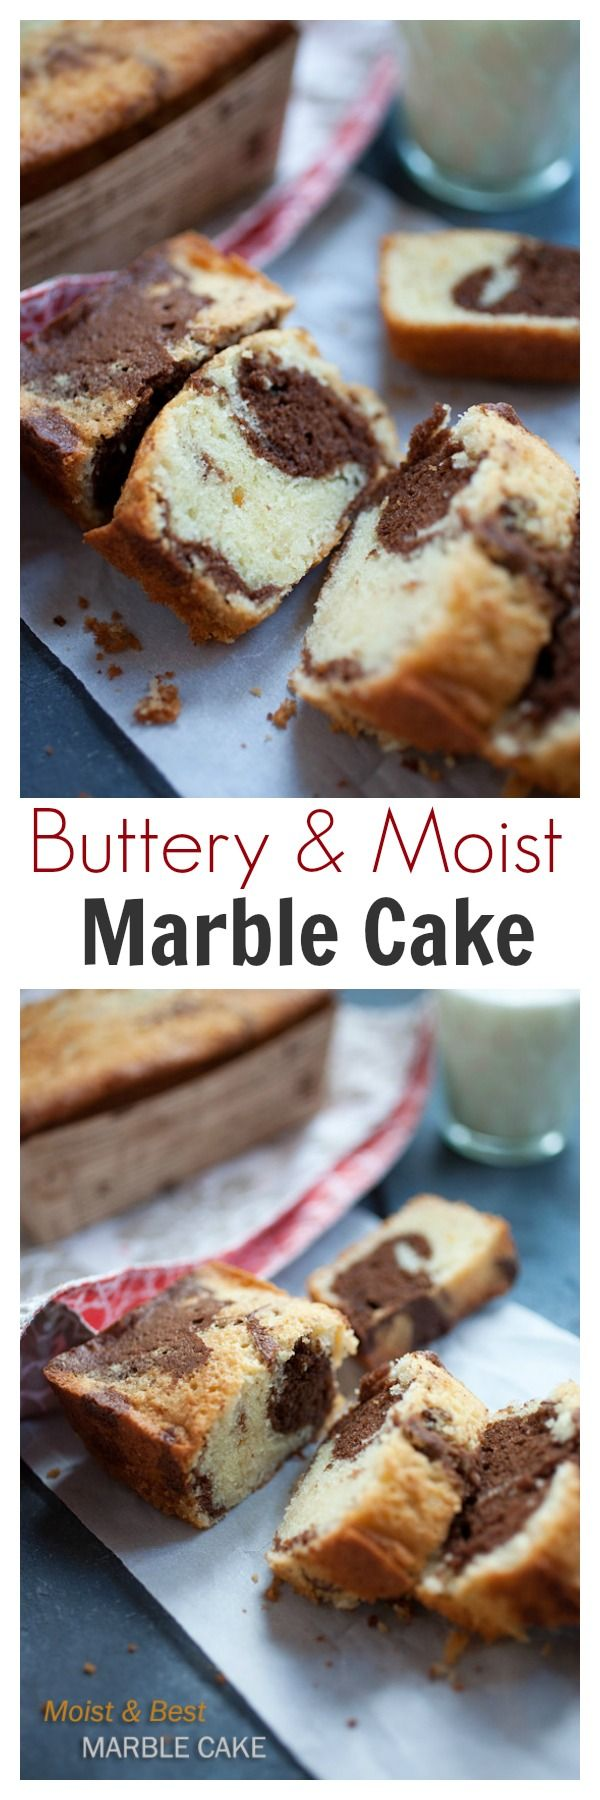 Marble Cake - Moist, buttery, and the BEST marble cake recipe ever. Get the recipe now   rasamalaysia.com